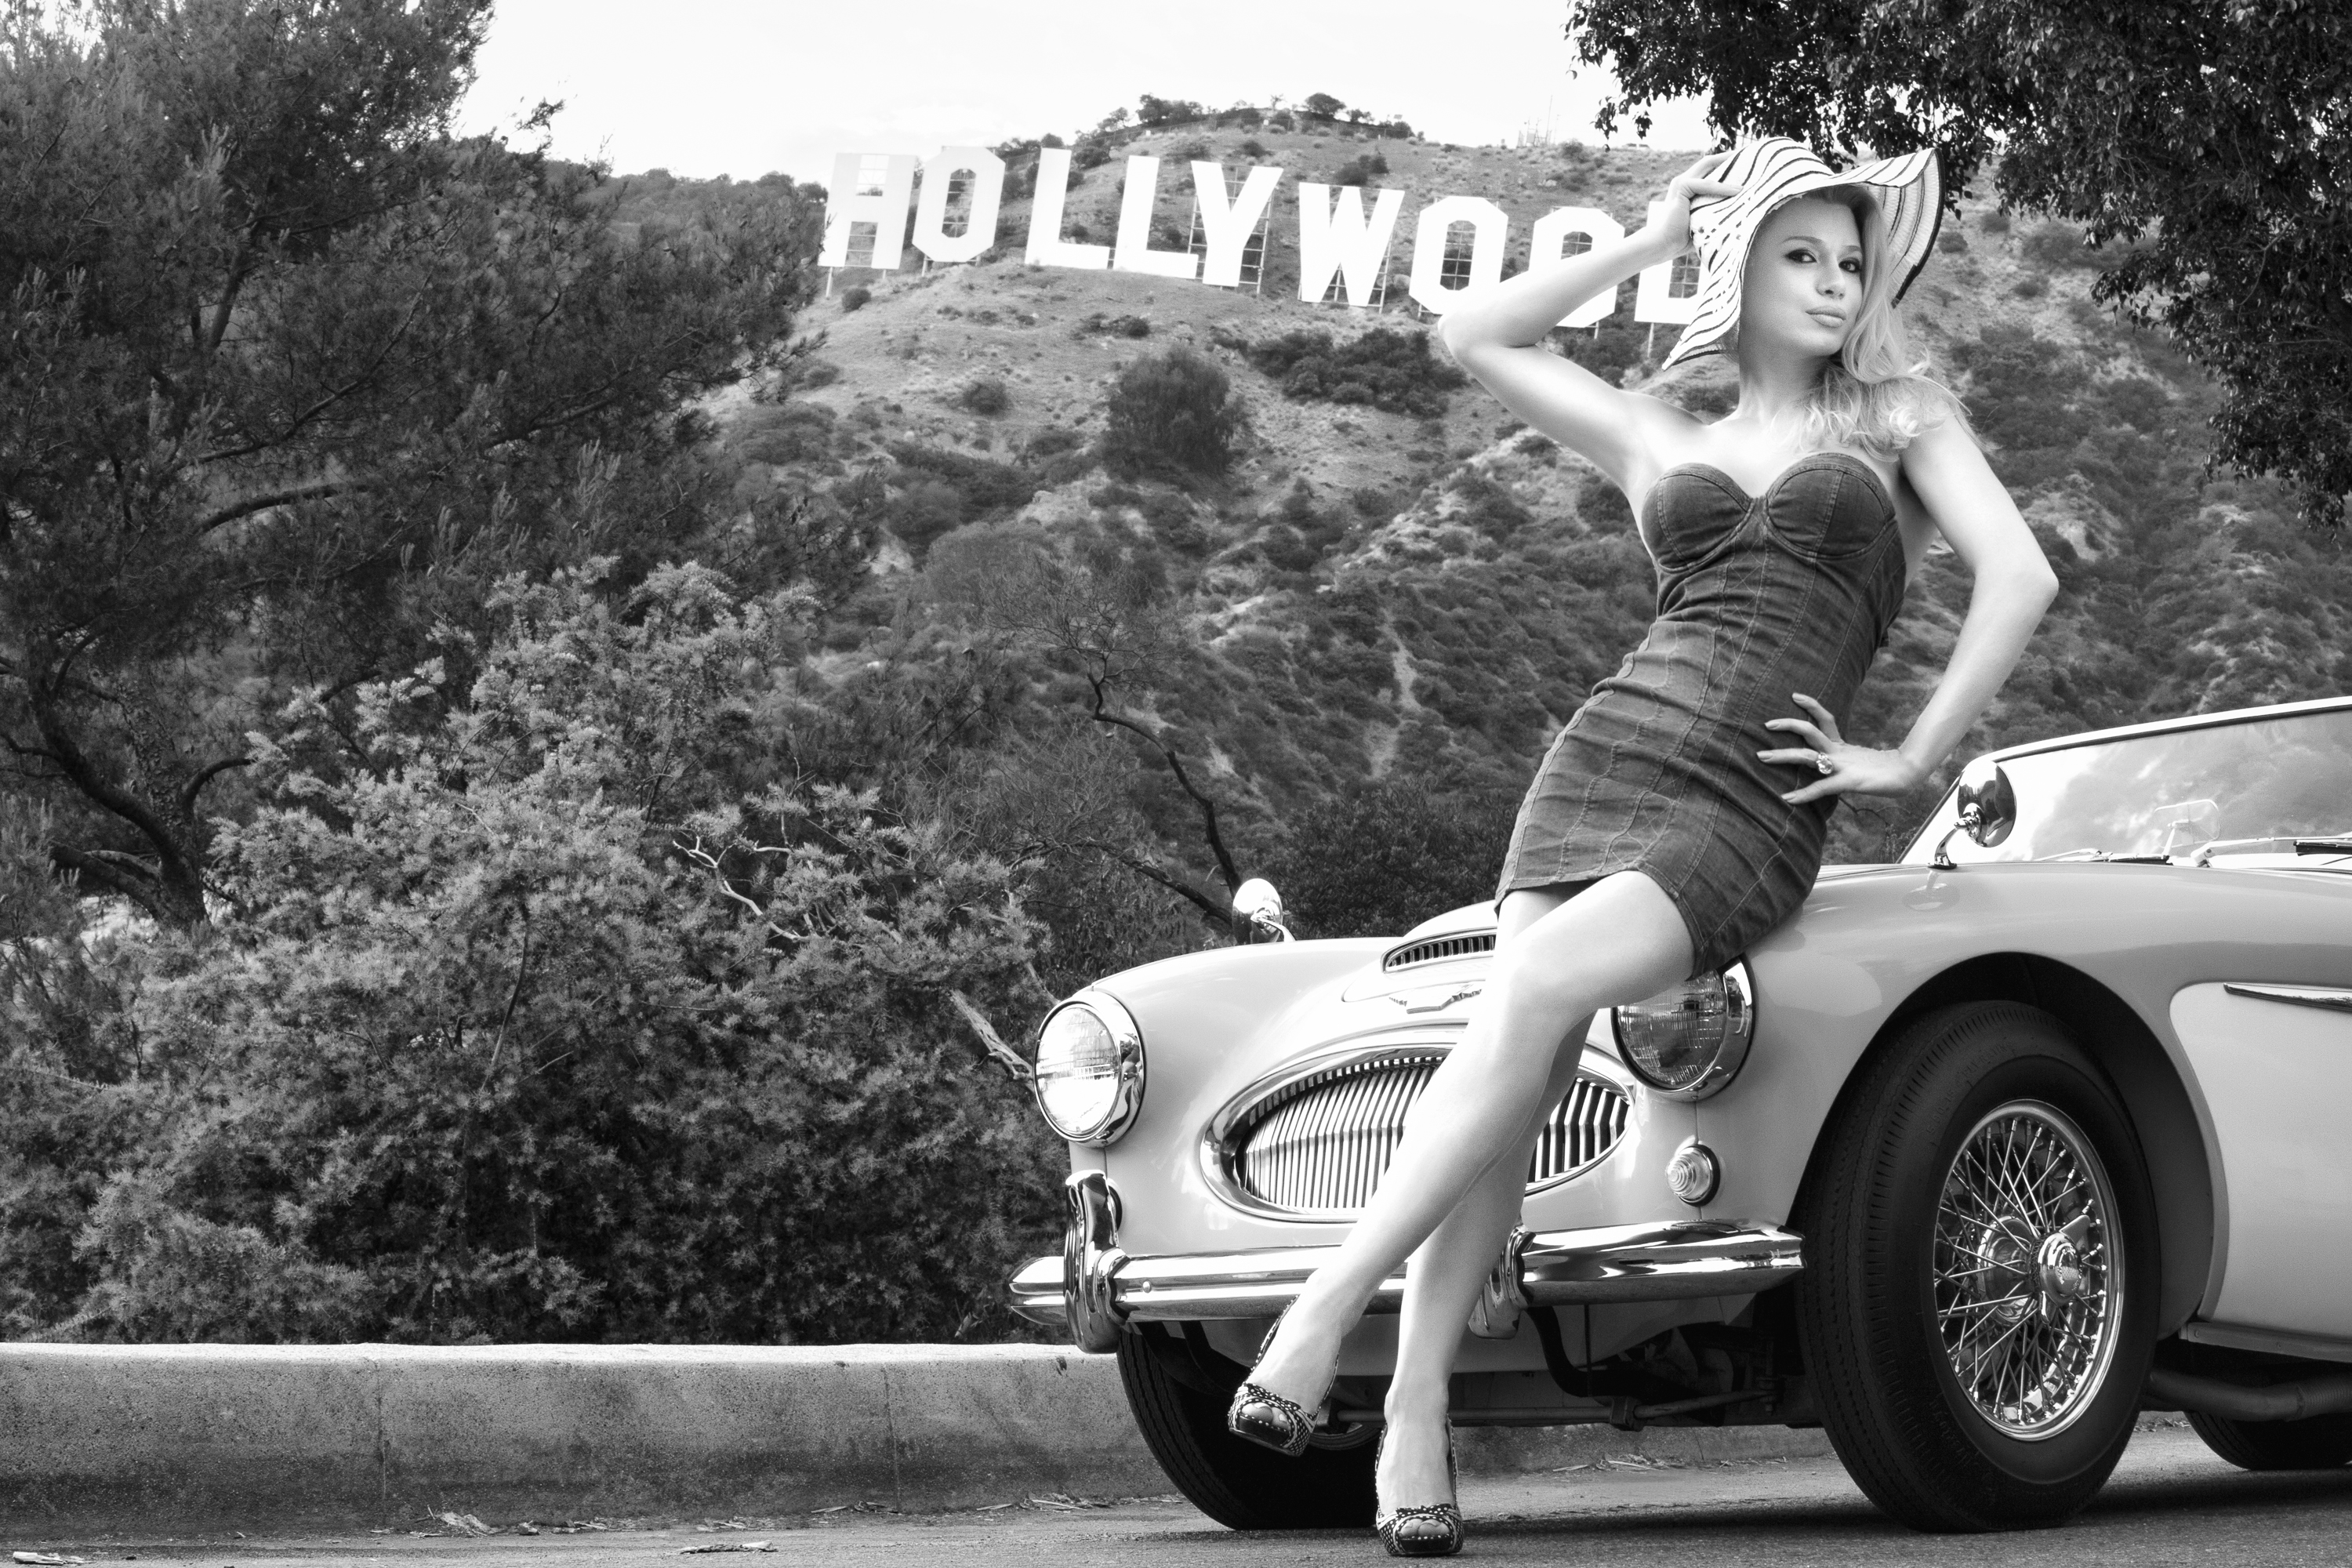 HOLLYWOOD DREAM EDITORIAL